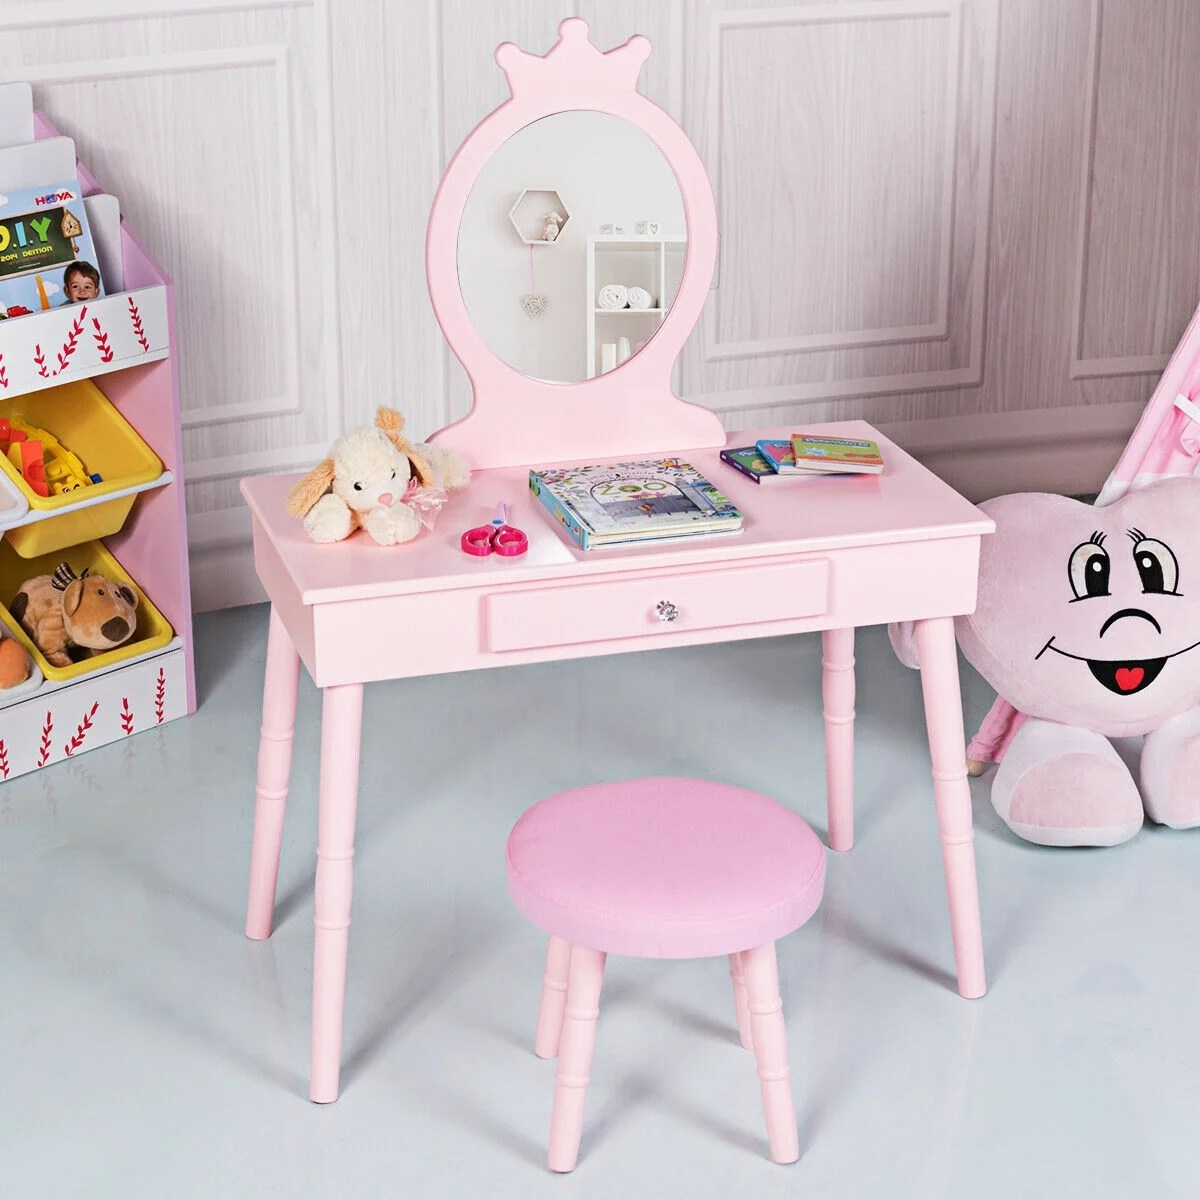 Shop Gymax Kids Vanity Makeup Table Chair Set Make Up Stool Play Set For On Sale Overstock 29793028